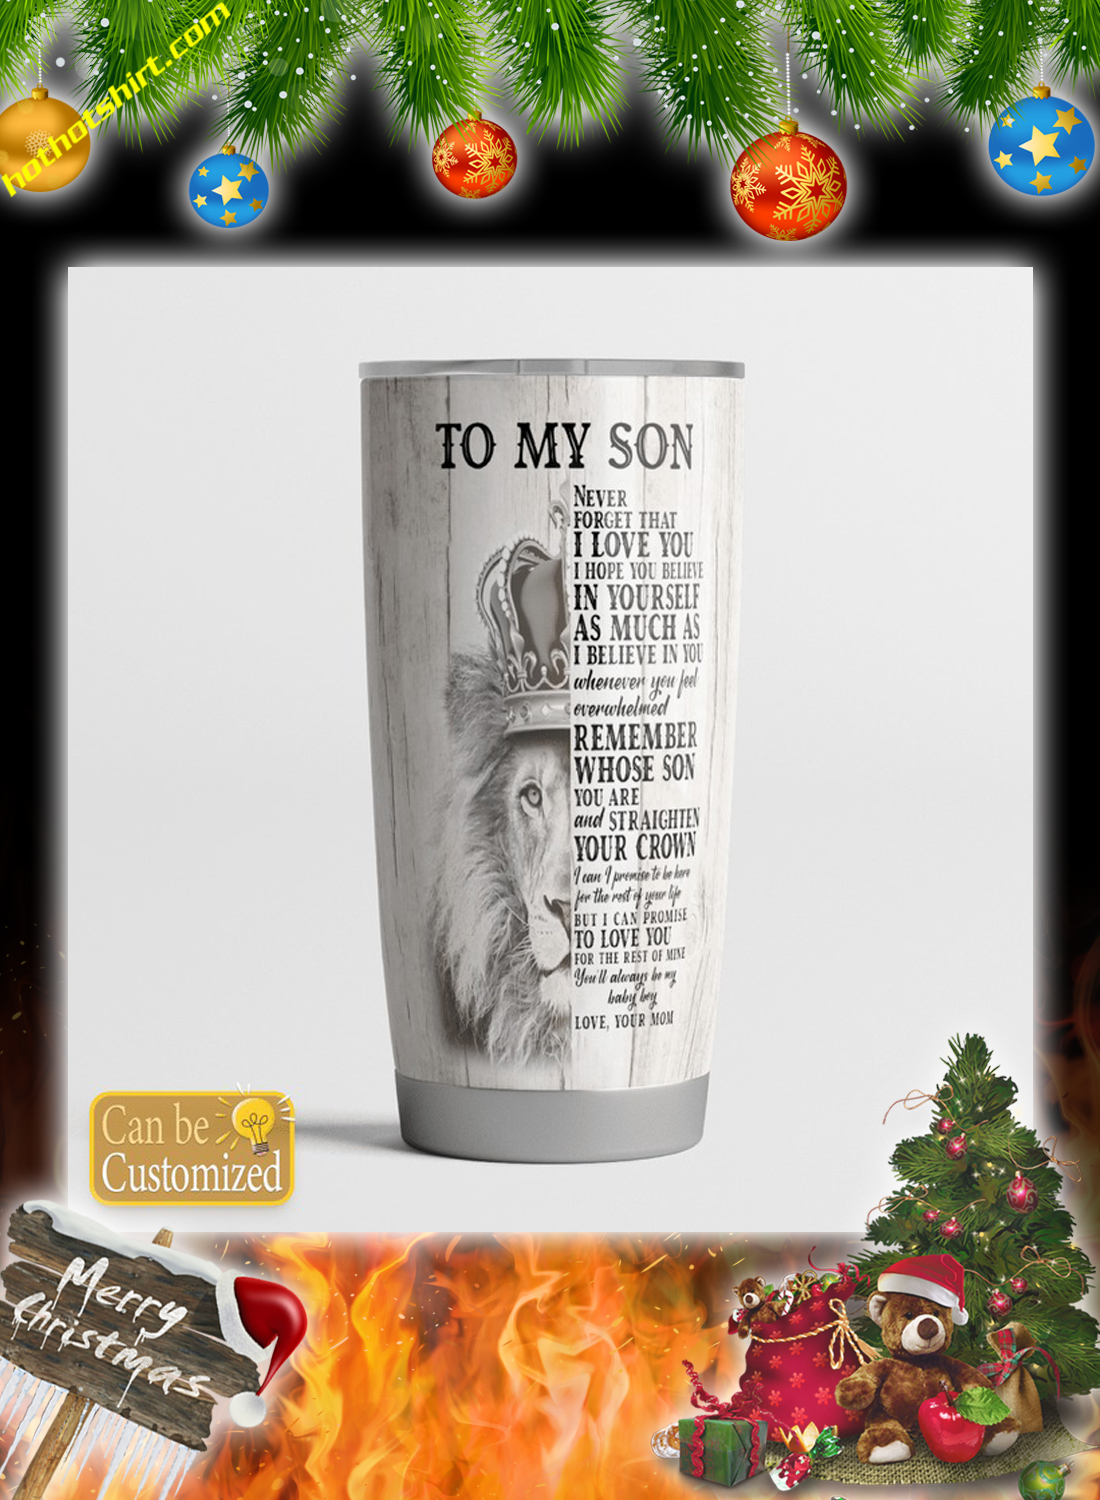 Personalize customize name Lion To my son you mom tumbler - Hothot 121120